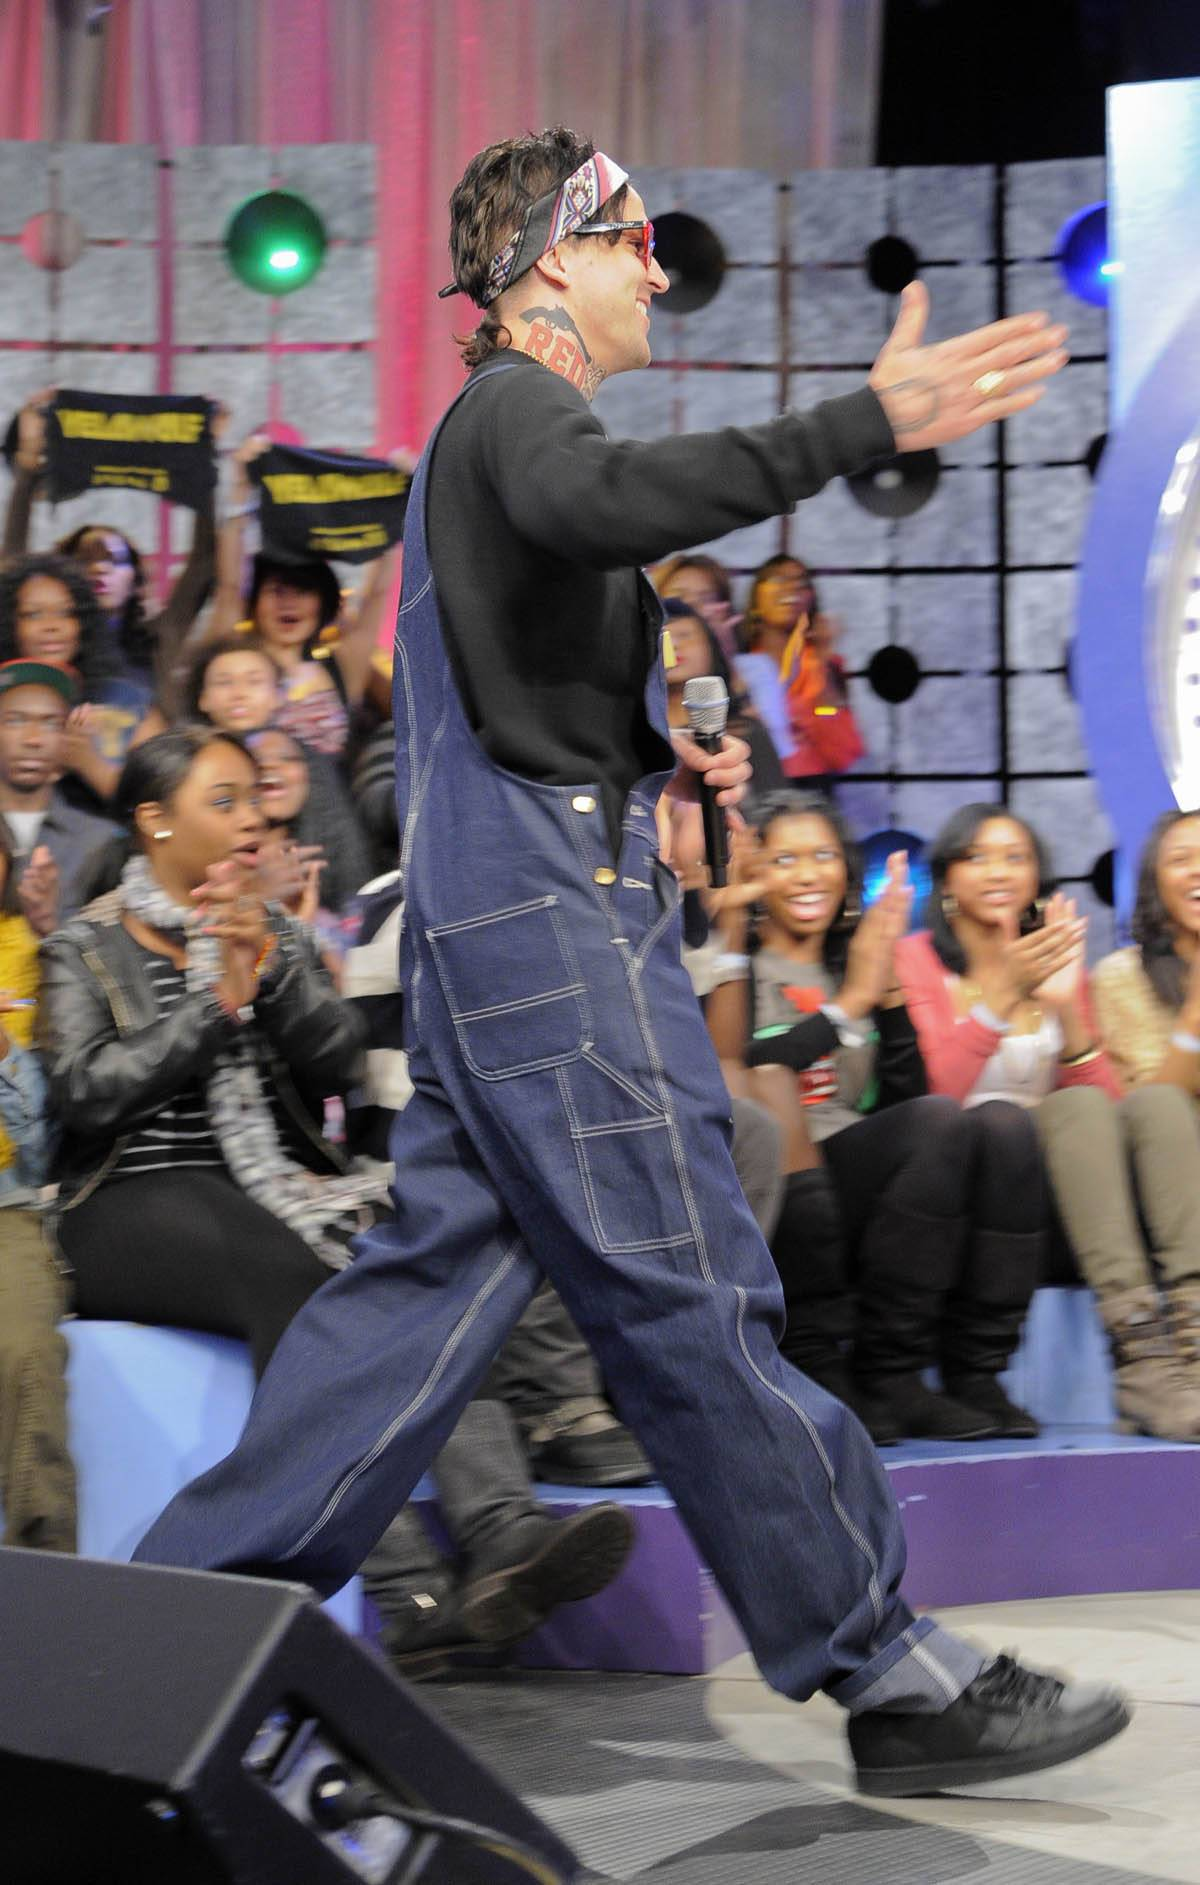 Here I Am - Yelawolf takes the stage at 106 & Park, January 27, 2012. (Photo: John Ricard / BET)